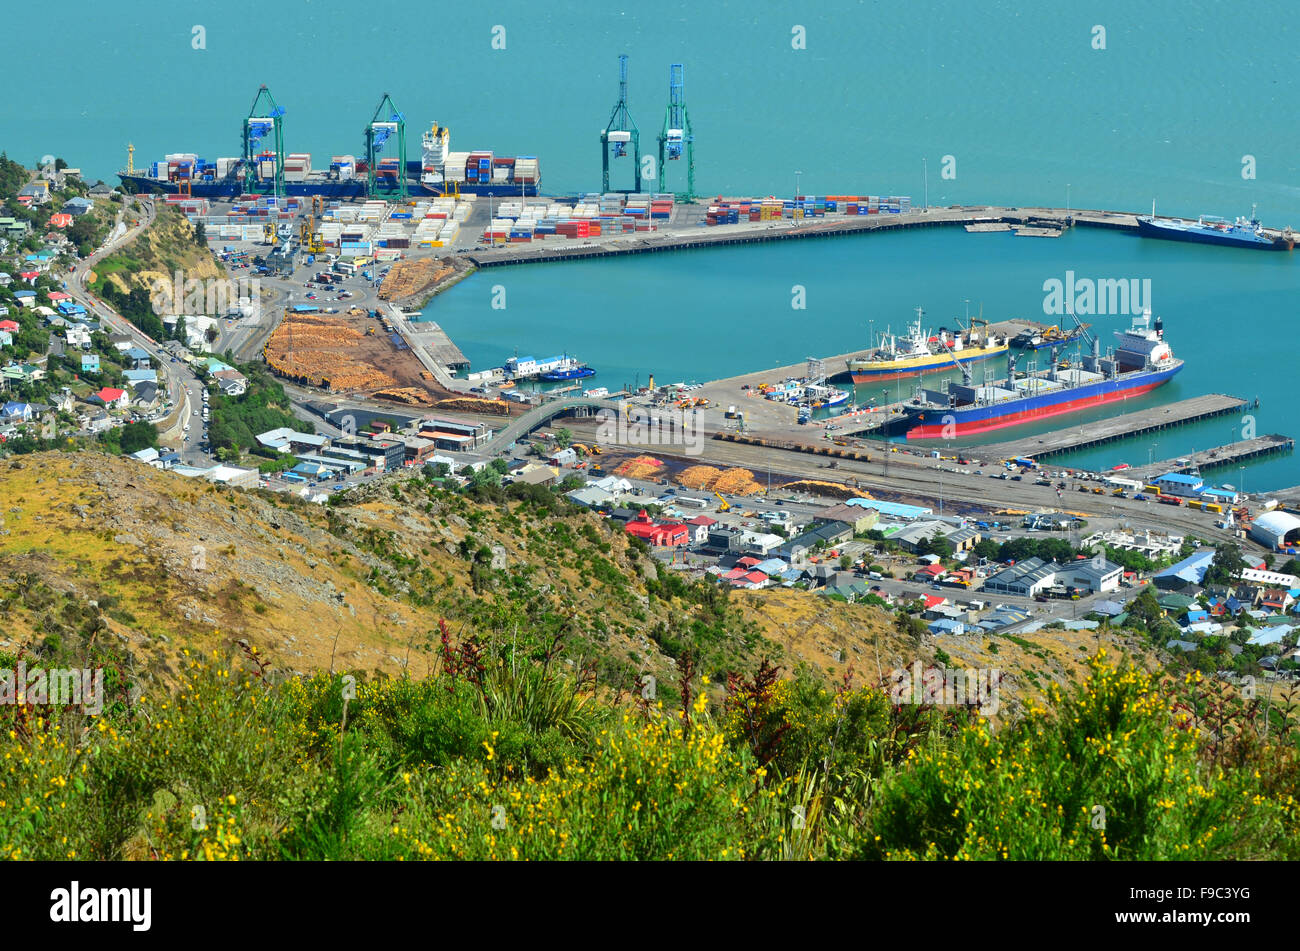 LYTTELTON - DEC 04 2015:Aerial view of Lyttelton Port of Christchurch. It's the primary port for energy shipments - Stock Image